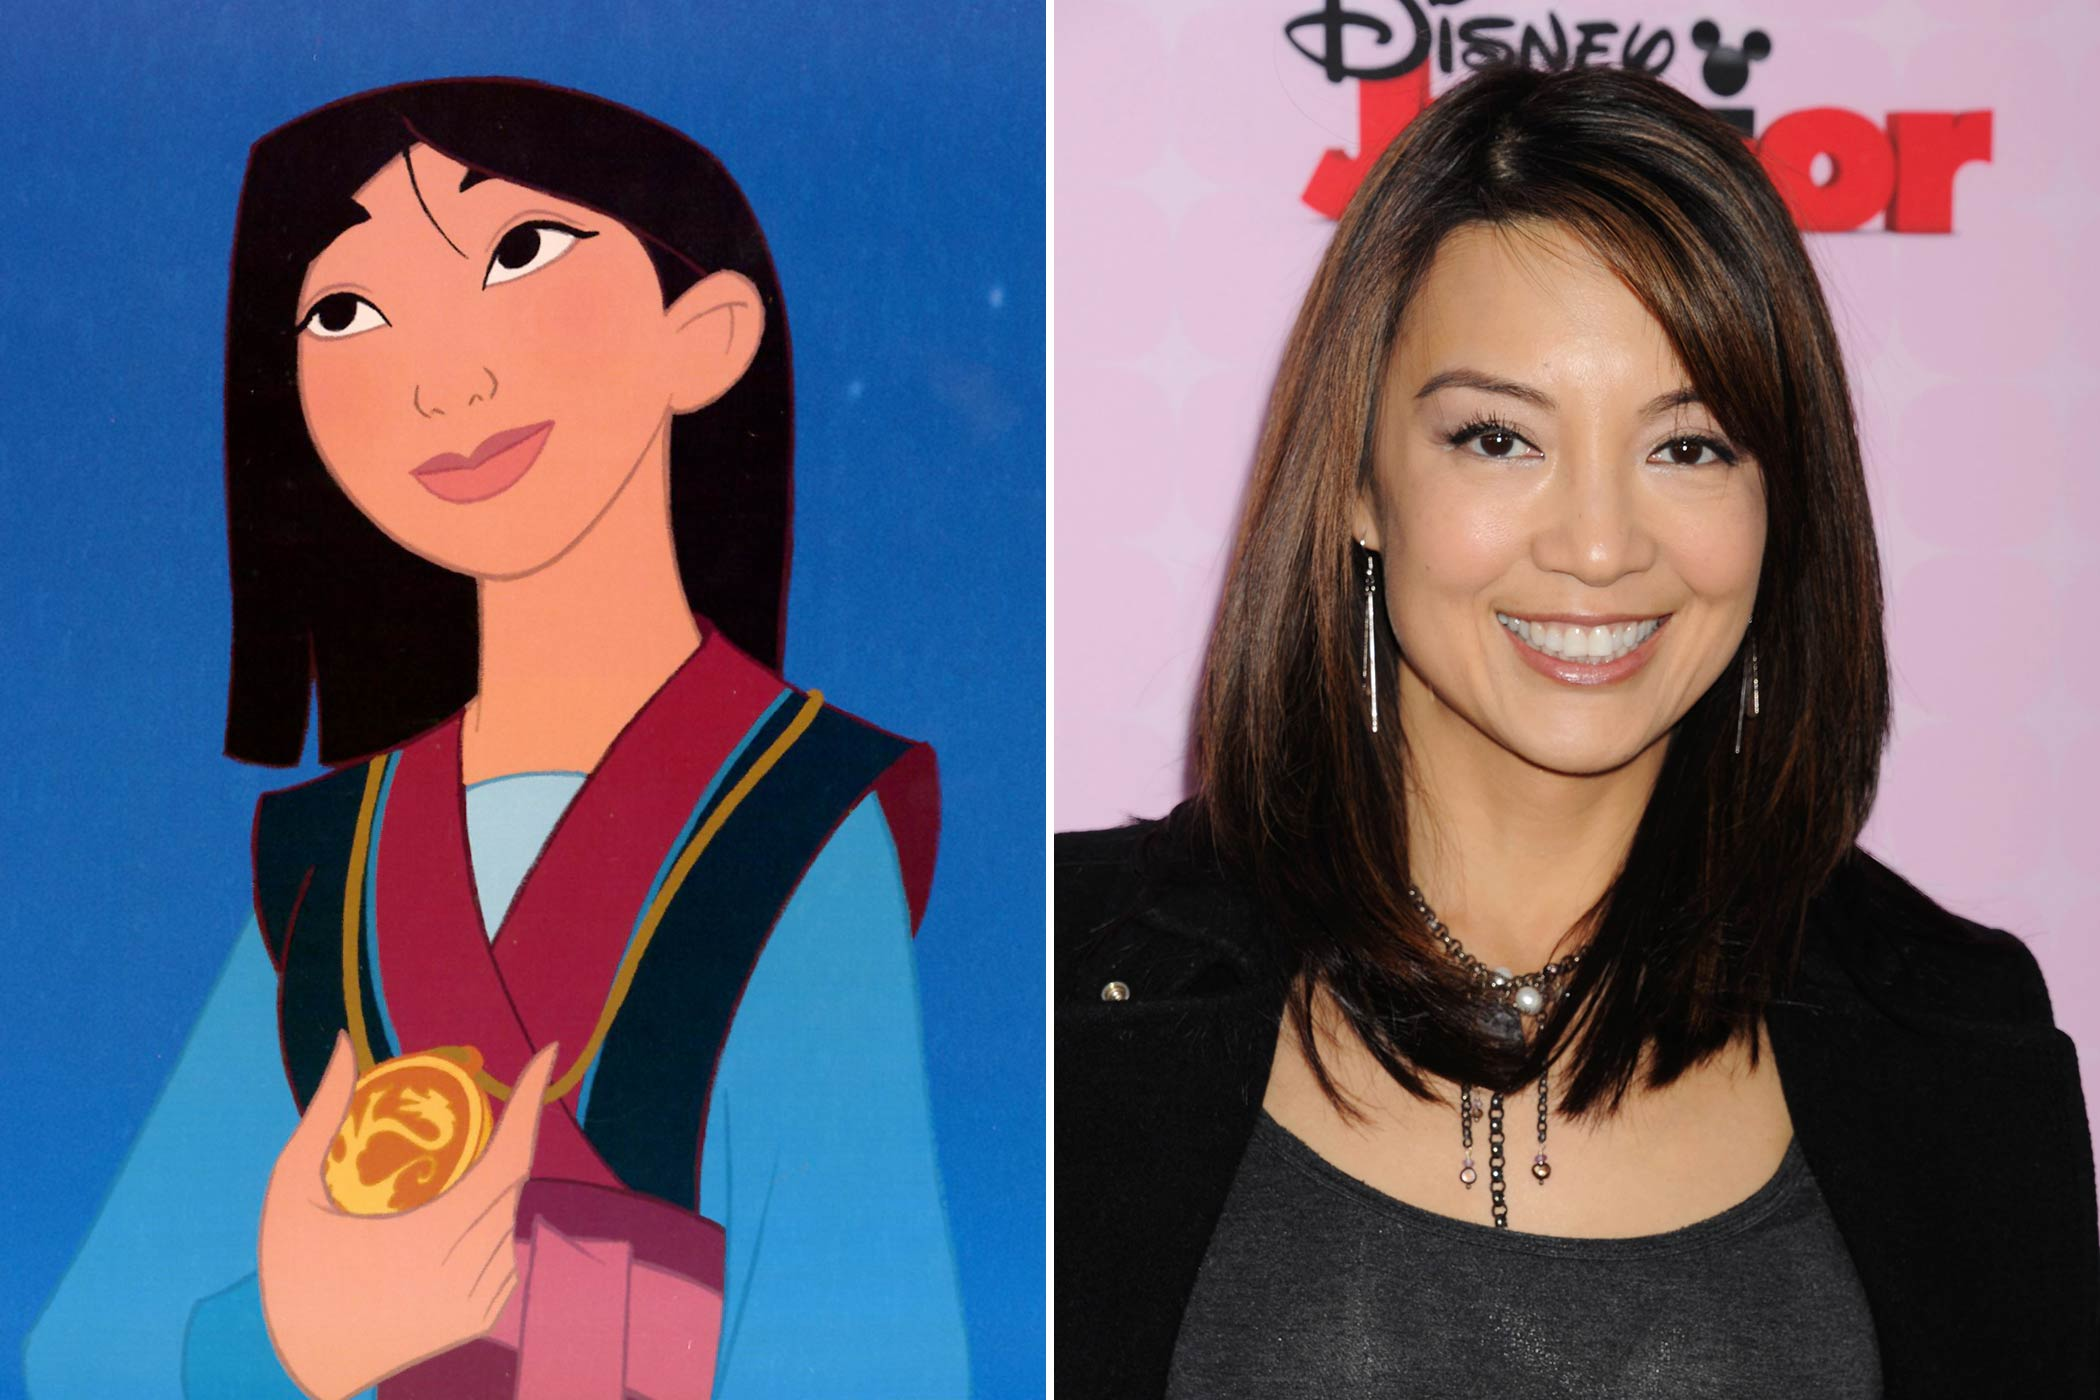 <strong>Mulan: Ming-Na Wen</strong>                                   The Chinese-American actress made her television debut on <i>Mister Rogers' Neighborhood</i> in 1985 as a Royal Trumpeter and starred in <i>The Joy Luck Club</i> as June Woo before she became the voice of Mulan. She currently plays Melinda May on <i>Agents of S.H.I.E.L.D</i>.